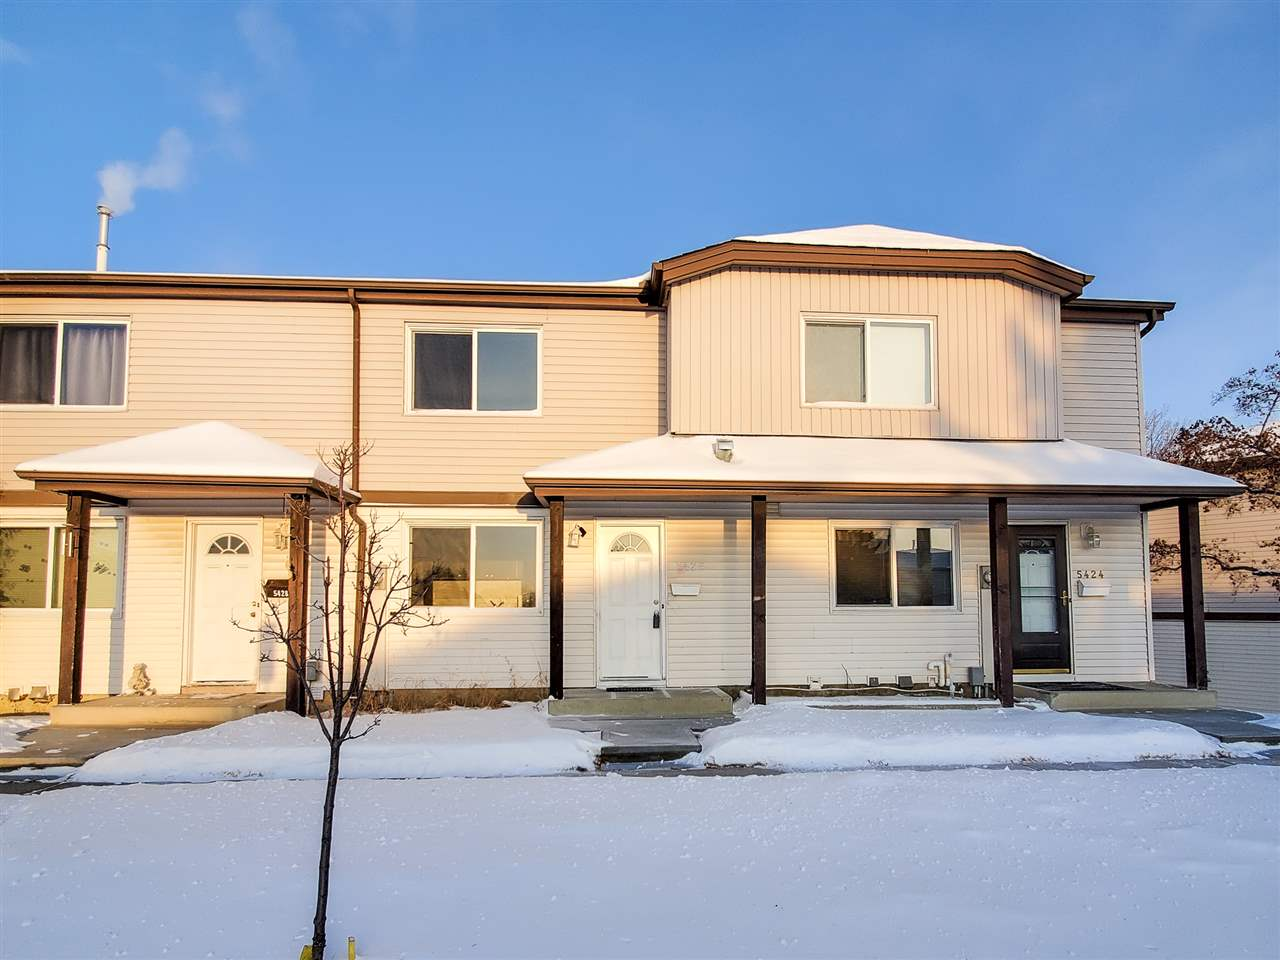 Fully Renovated! New cabinets, new paint, newer flooring, newer appliances and lots more! Just renovated and priced to sell! This amazing town house features 1.5 baths and 3 bedrooms including the very large master bedroom. The home also features a decent sized backyard. Location! Minutes away from Manning Town Center for all of your amenities, restaurants and shopping! Also within very close distance to the Anthony Henday! MOVE IN TODAY!